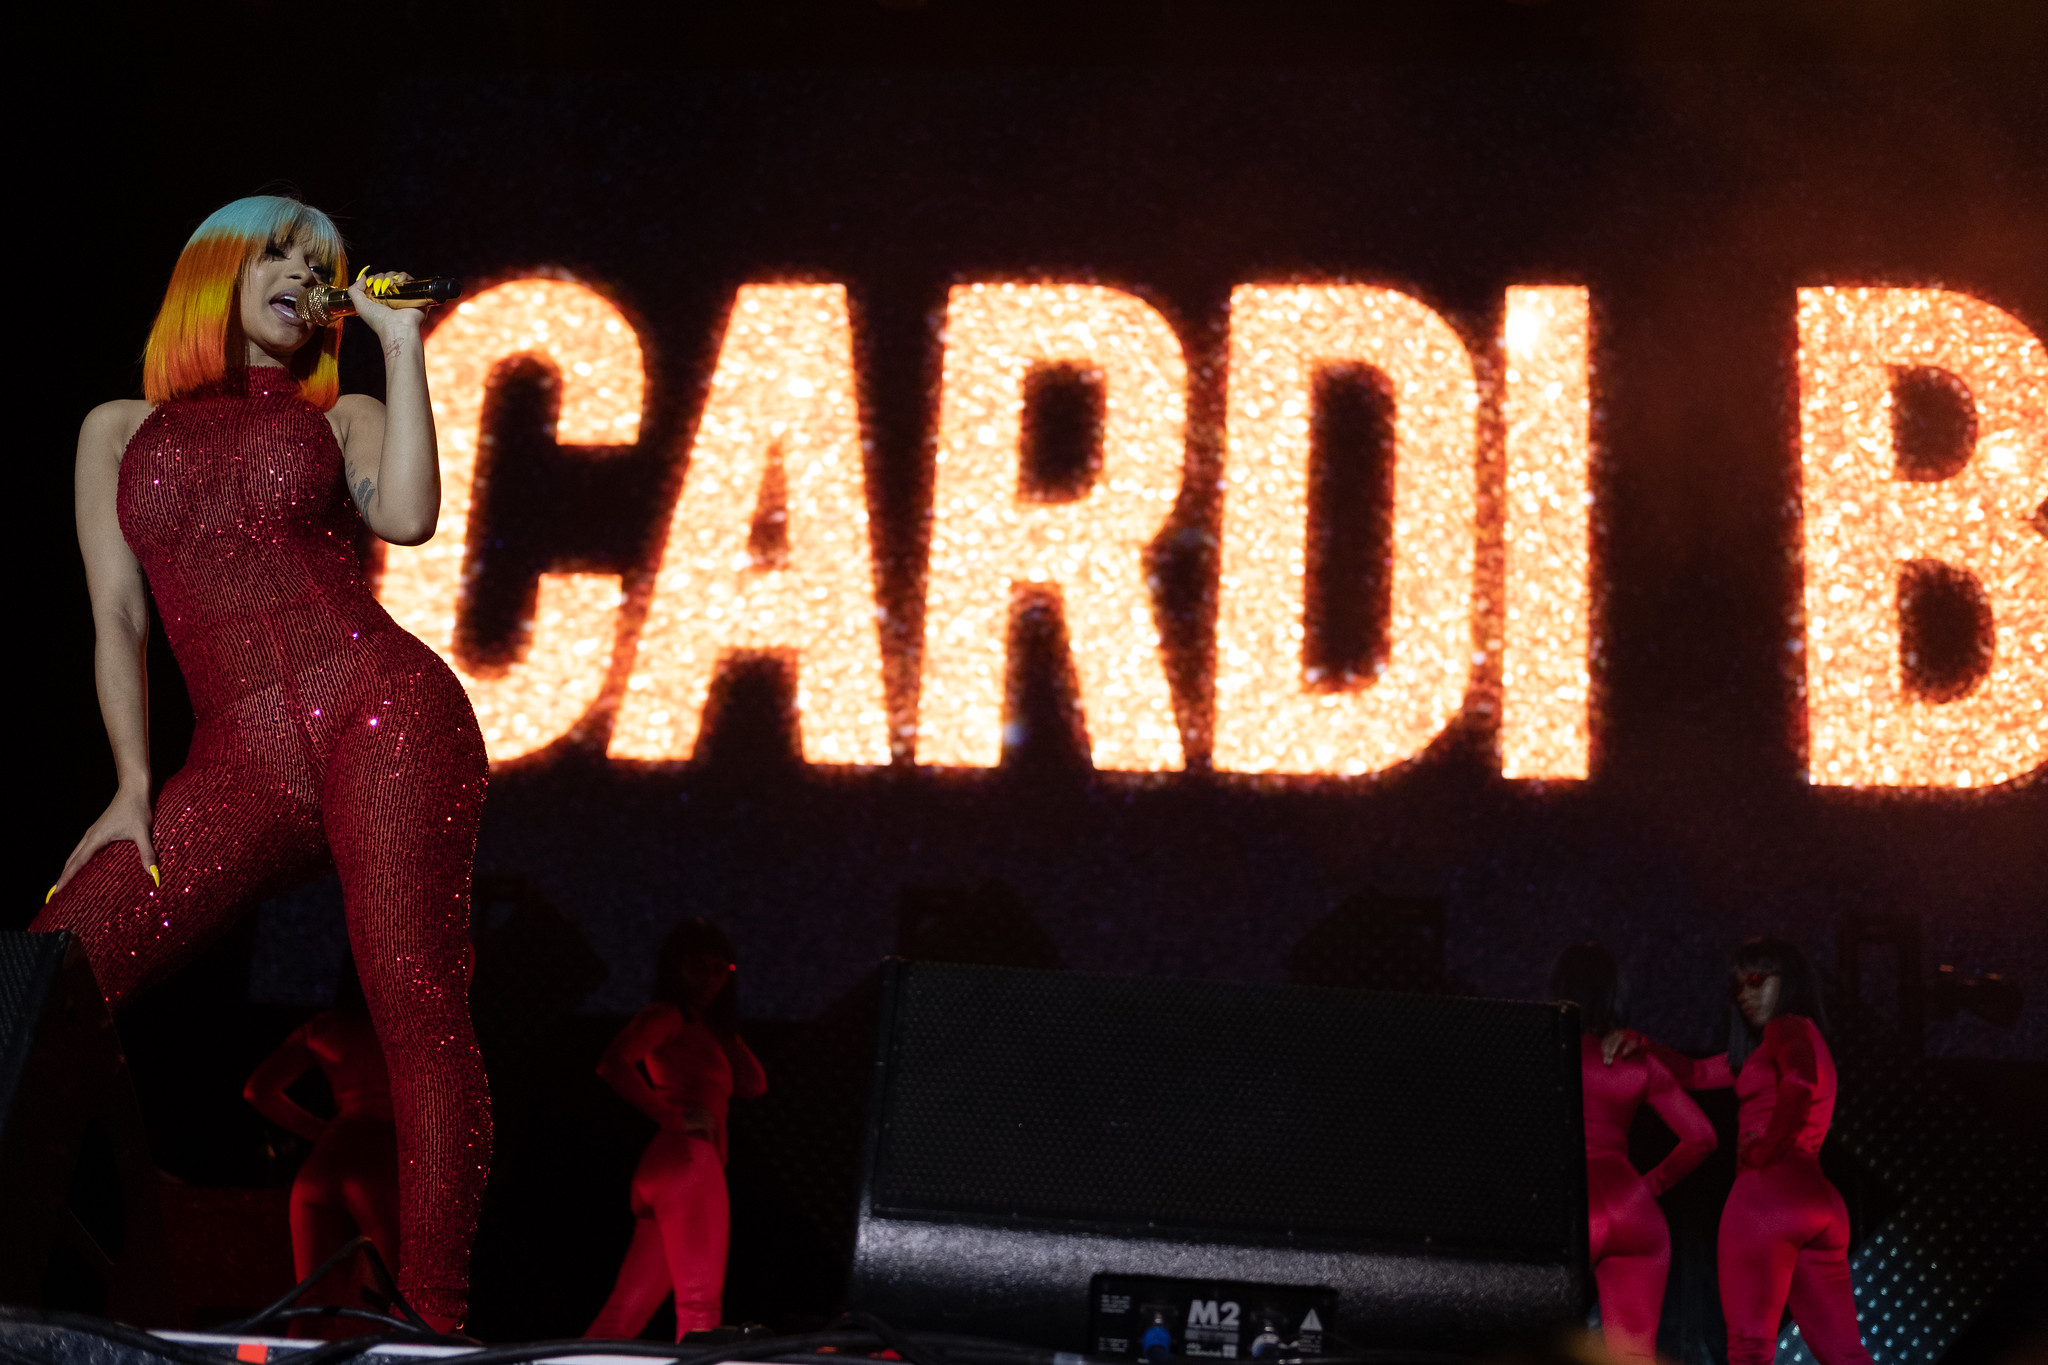 Cardi B on stage